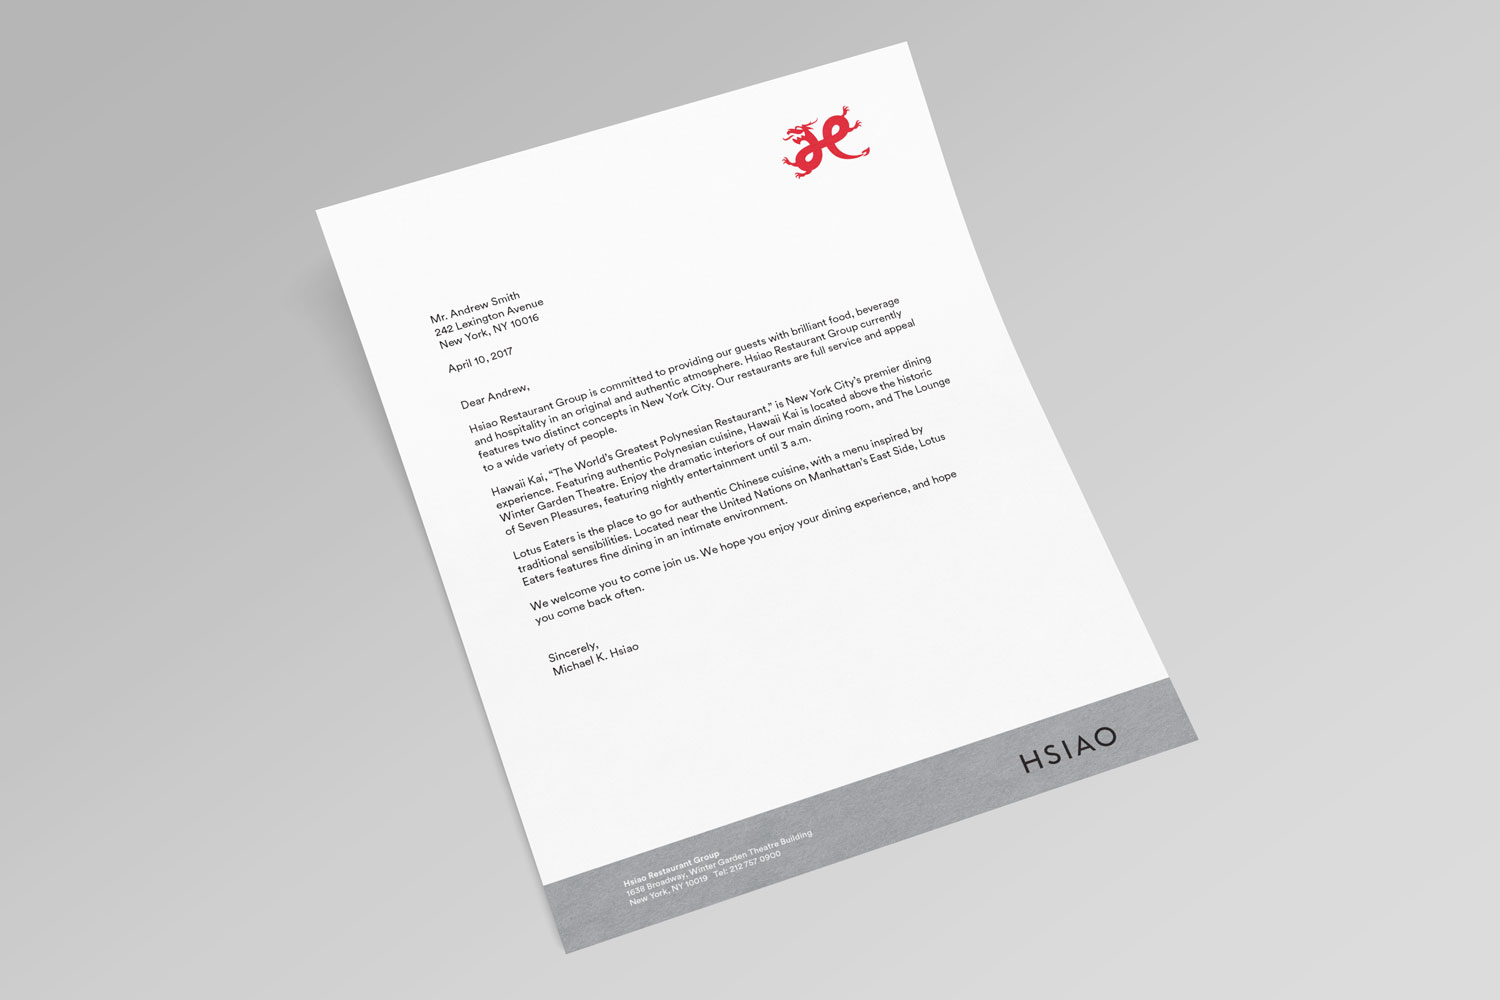 Hsiao Restaurant Group stationery